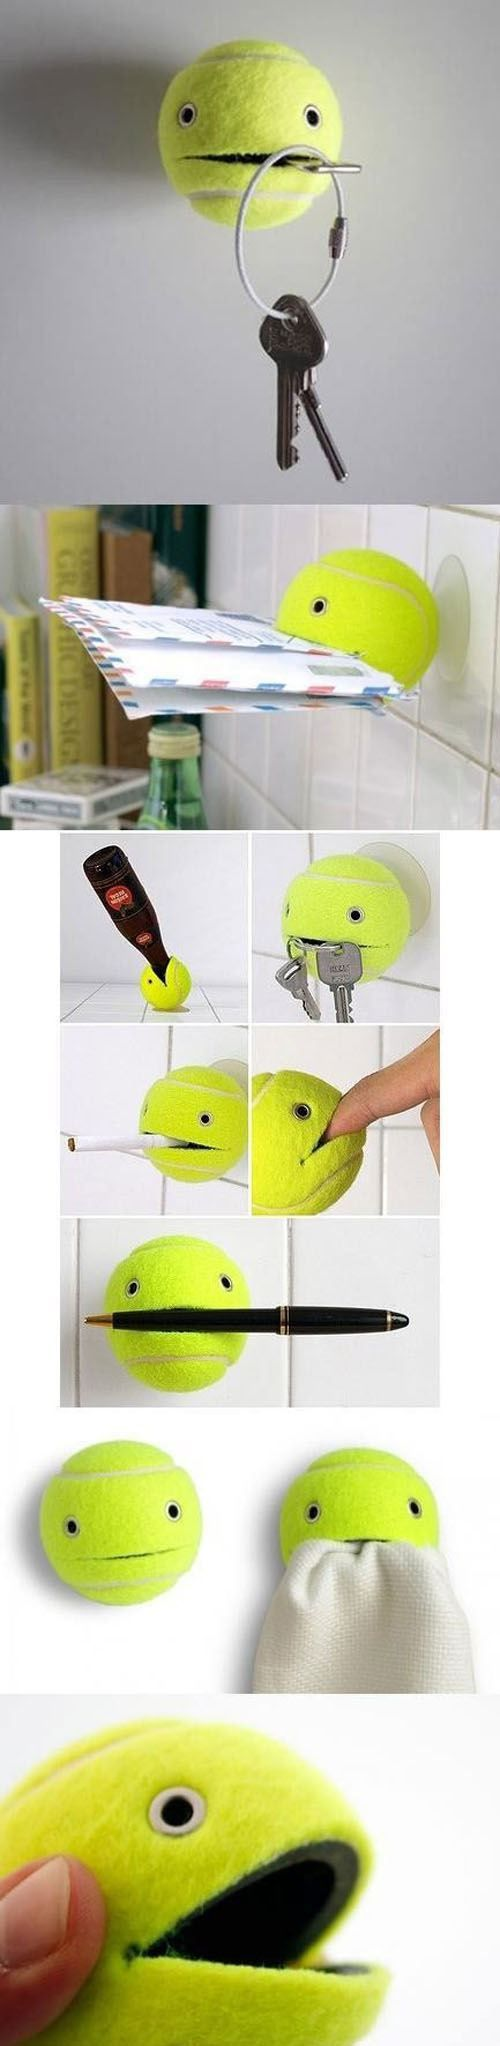 Make your own hook using a tennis ball! For everything you need to craft visit Walgreens.com.